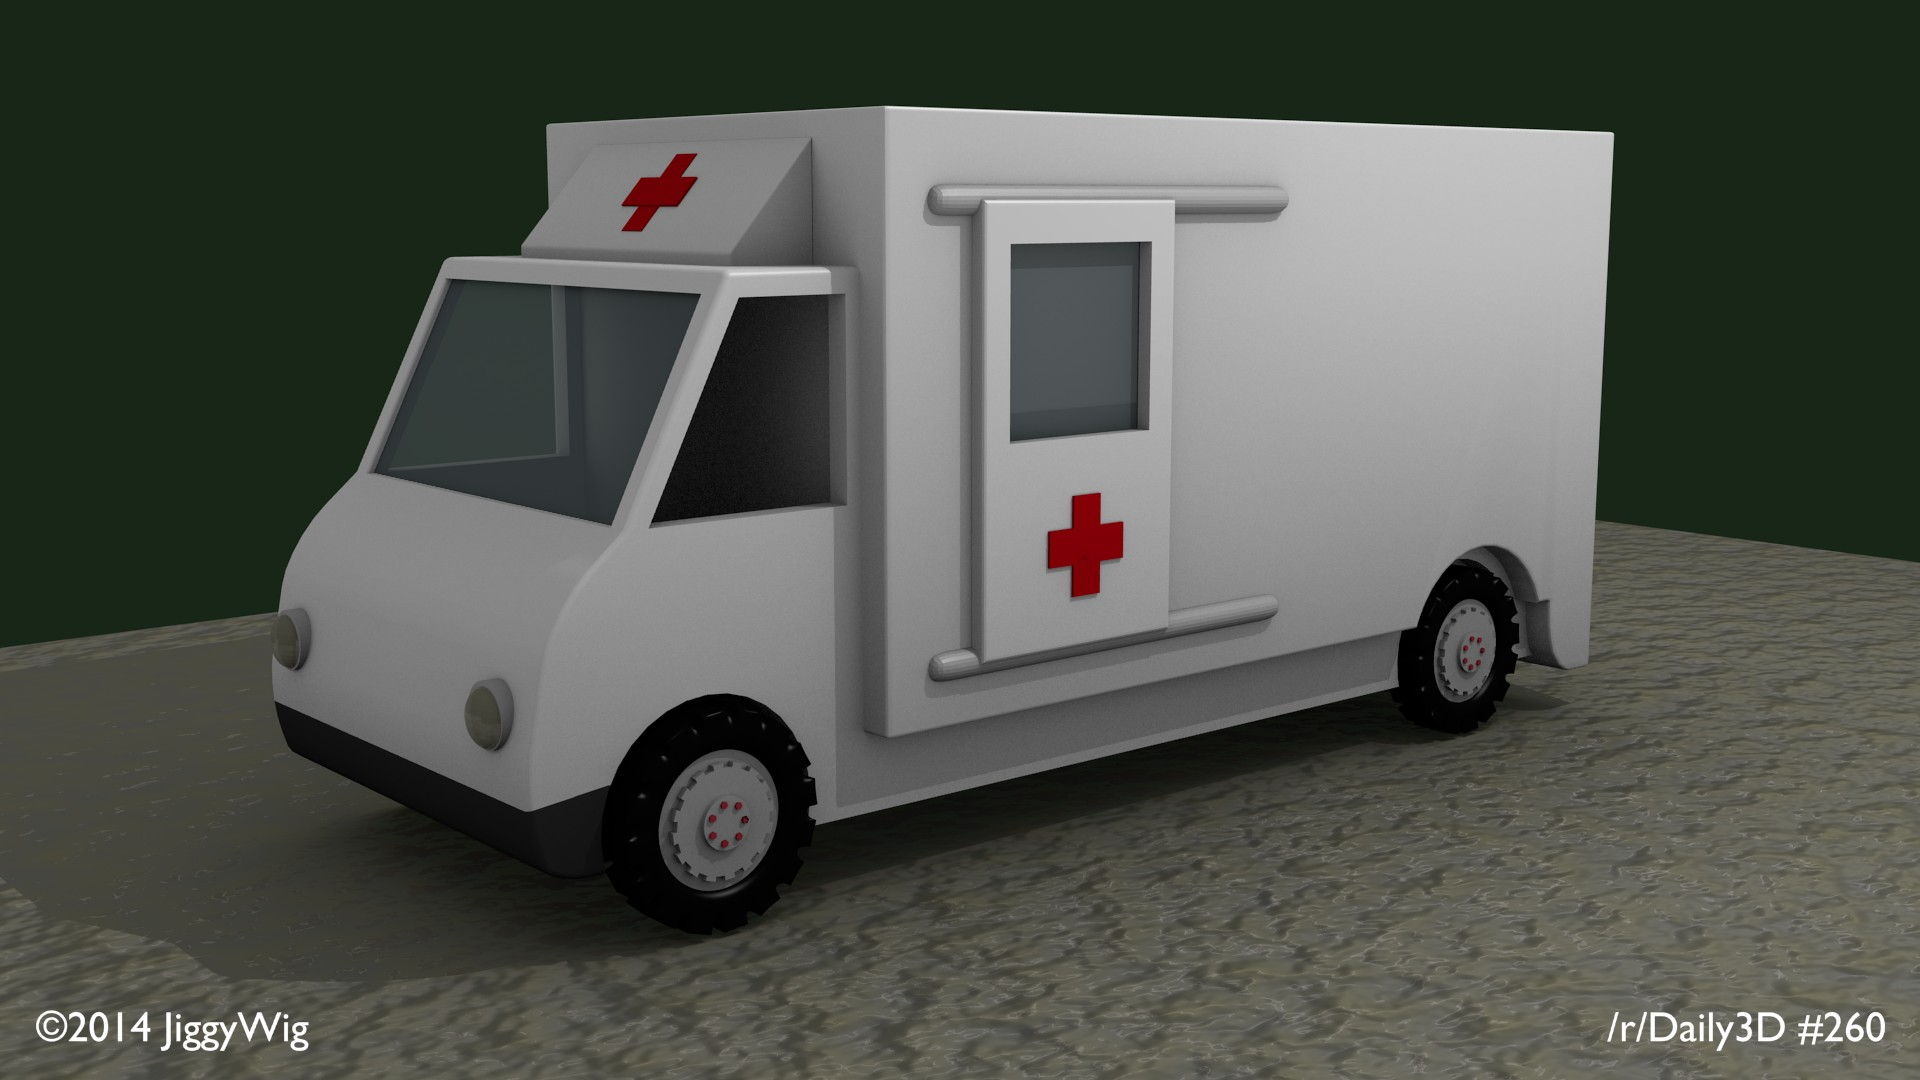 #260 - Modelled on Toy Ambulance.